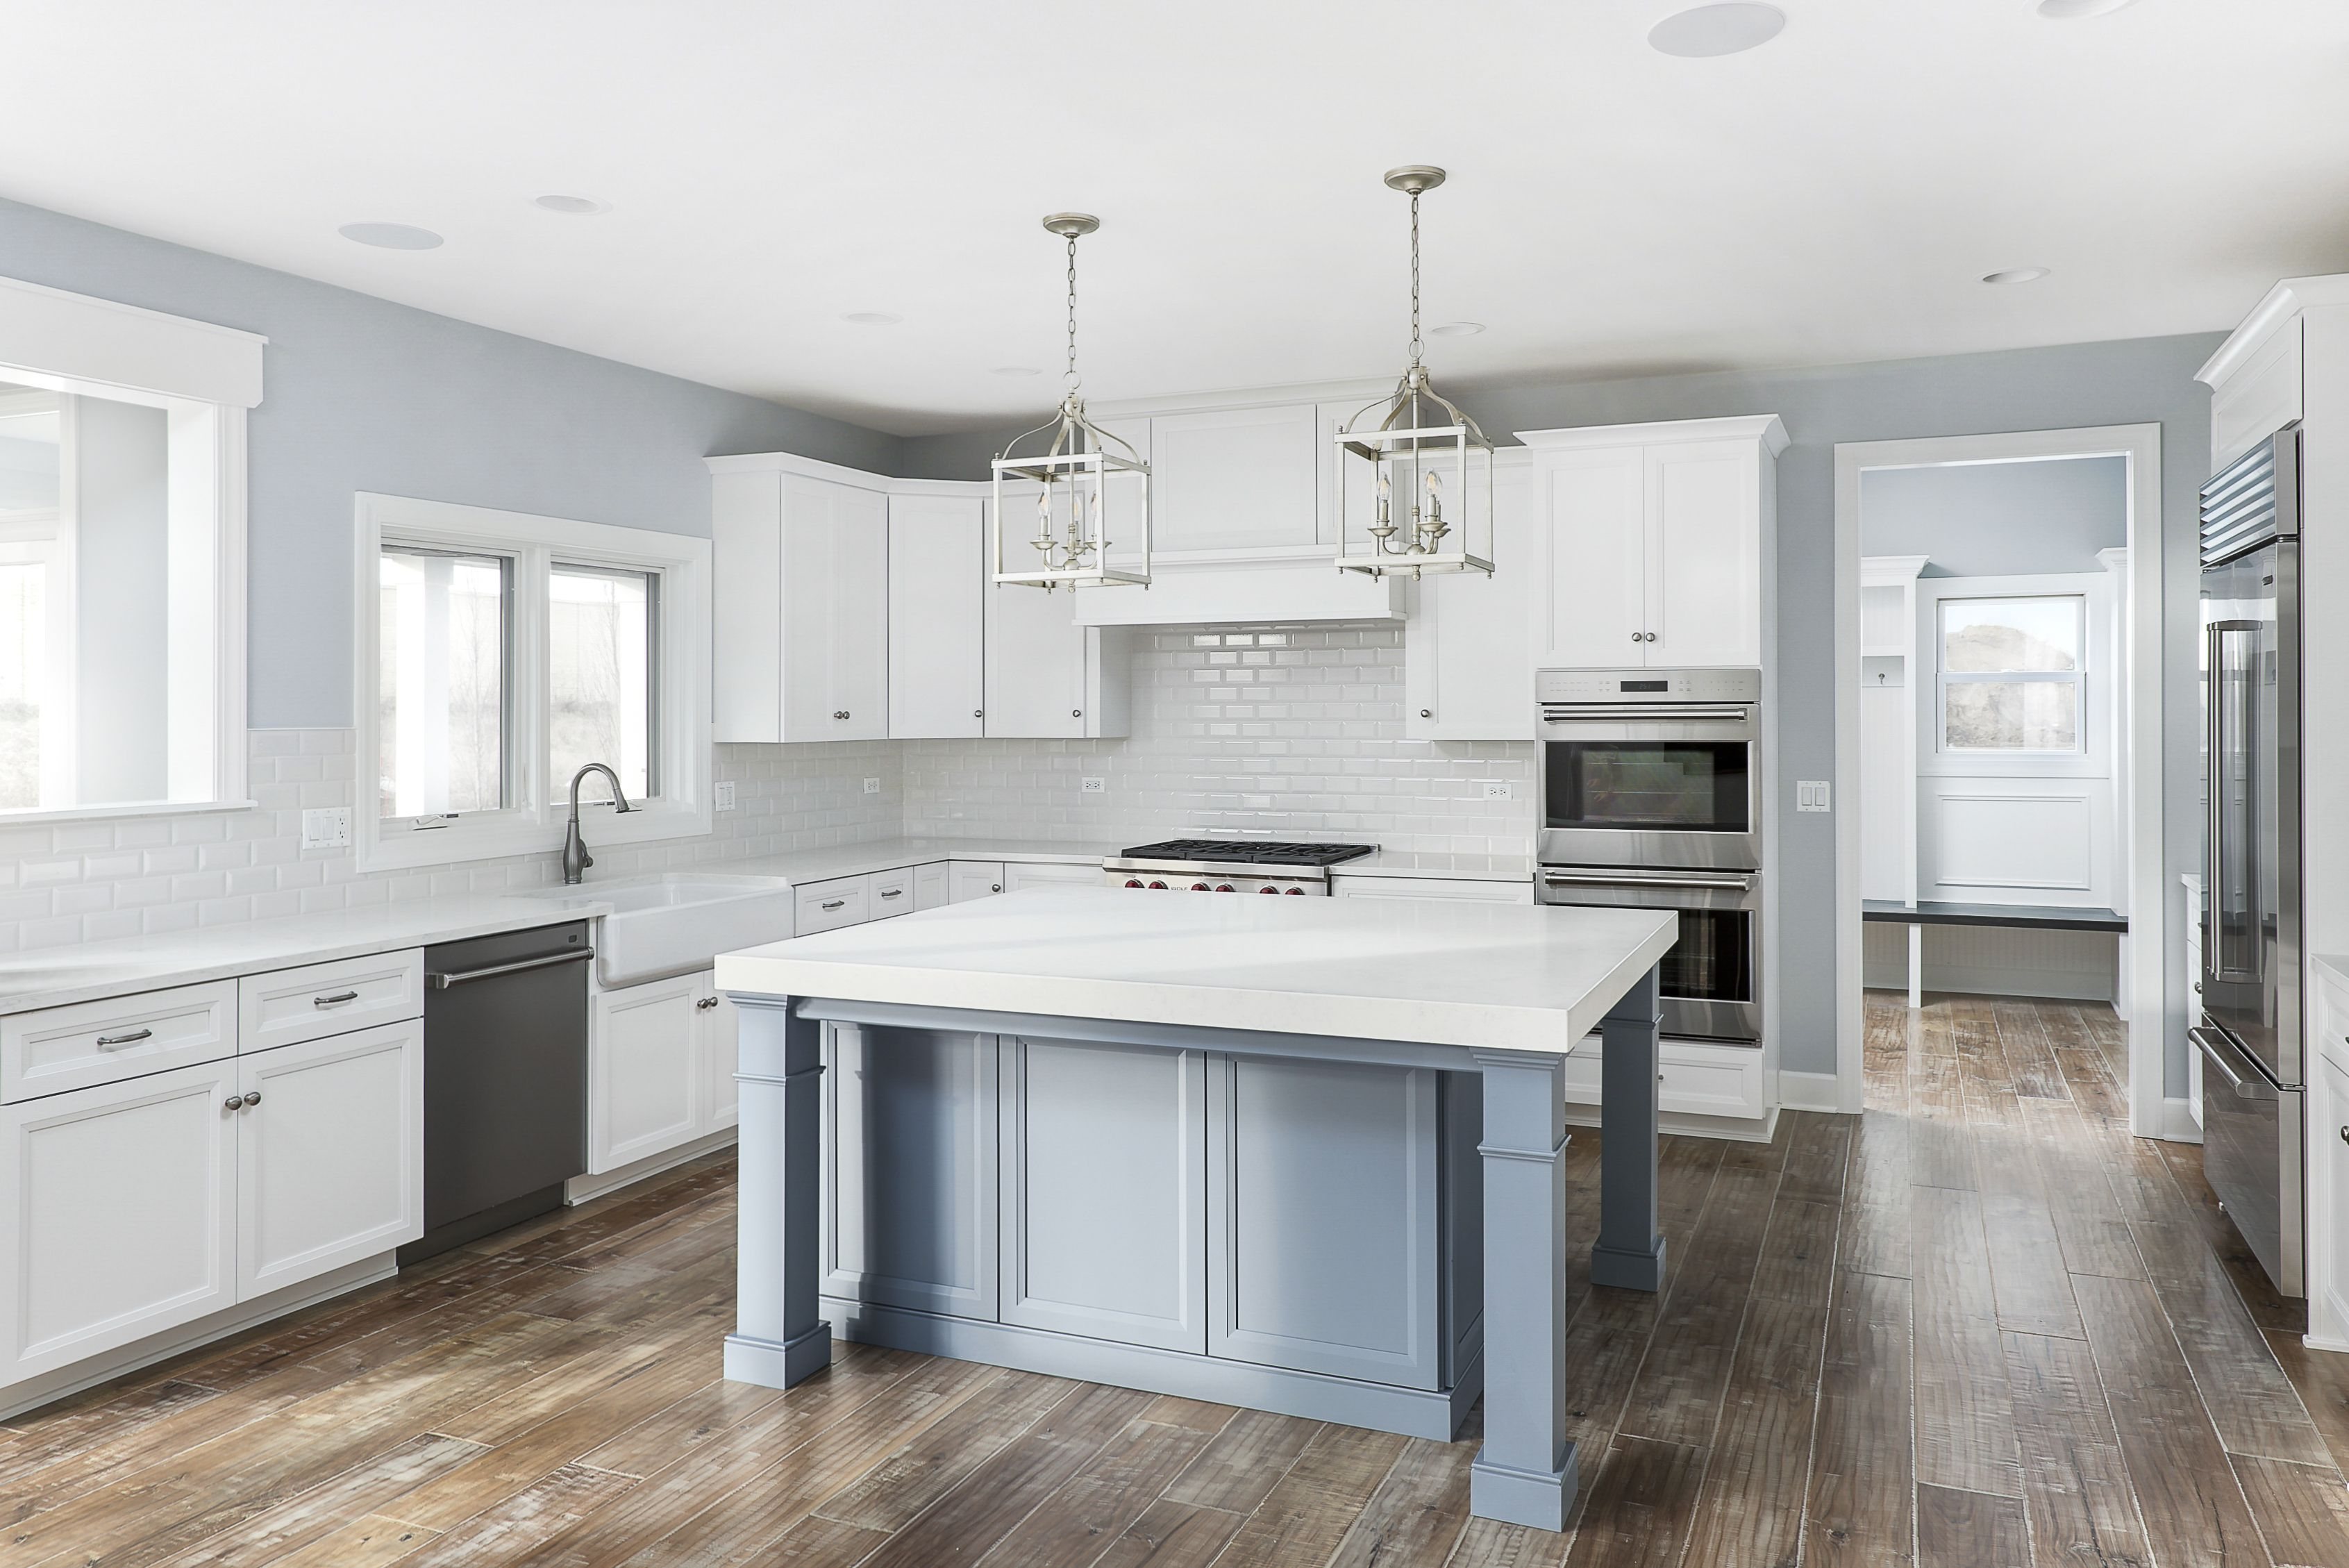 White Cabinets And Blue Gray Island Combine For A Casual Elegance In This Custom Built Home By King S Court Builders Nap Custom Homes Home Custom Home Designs